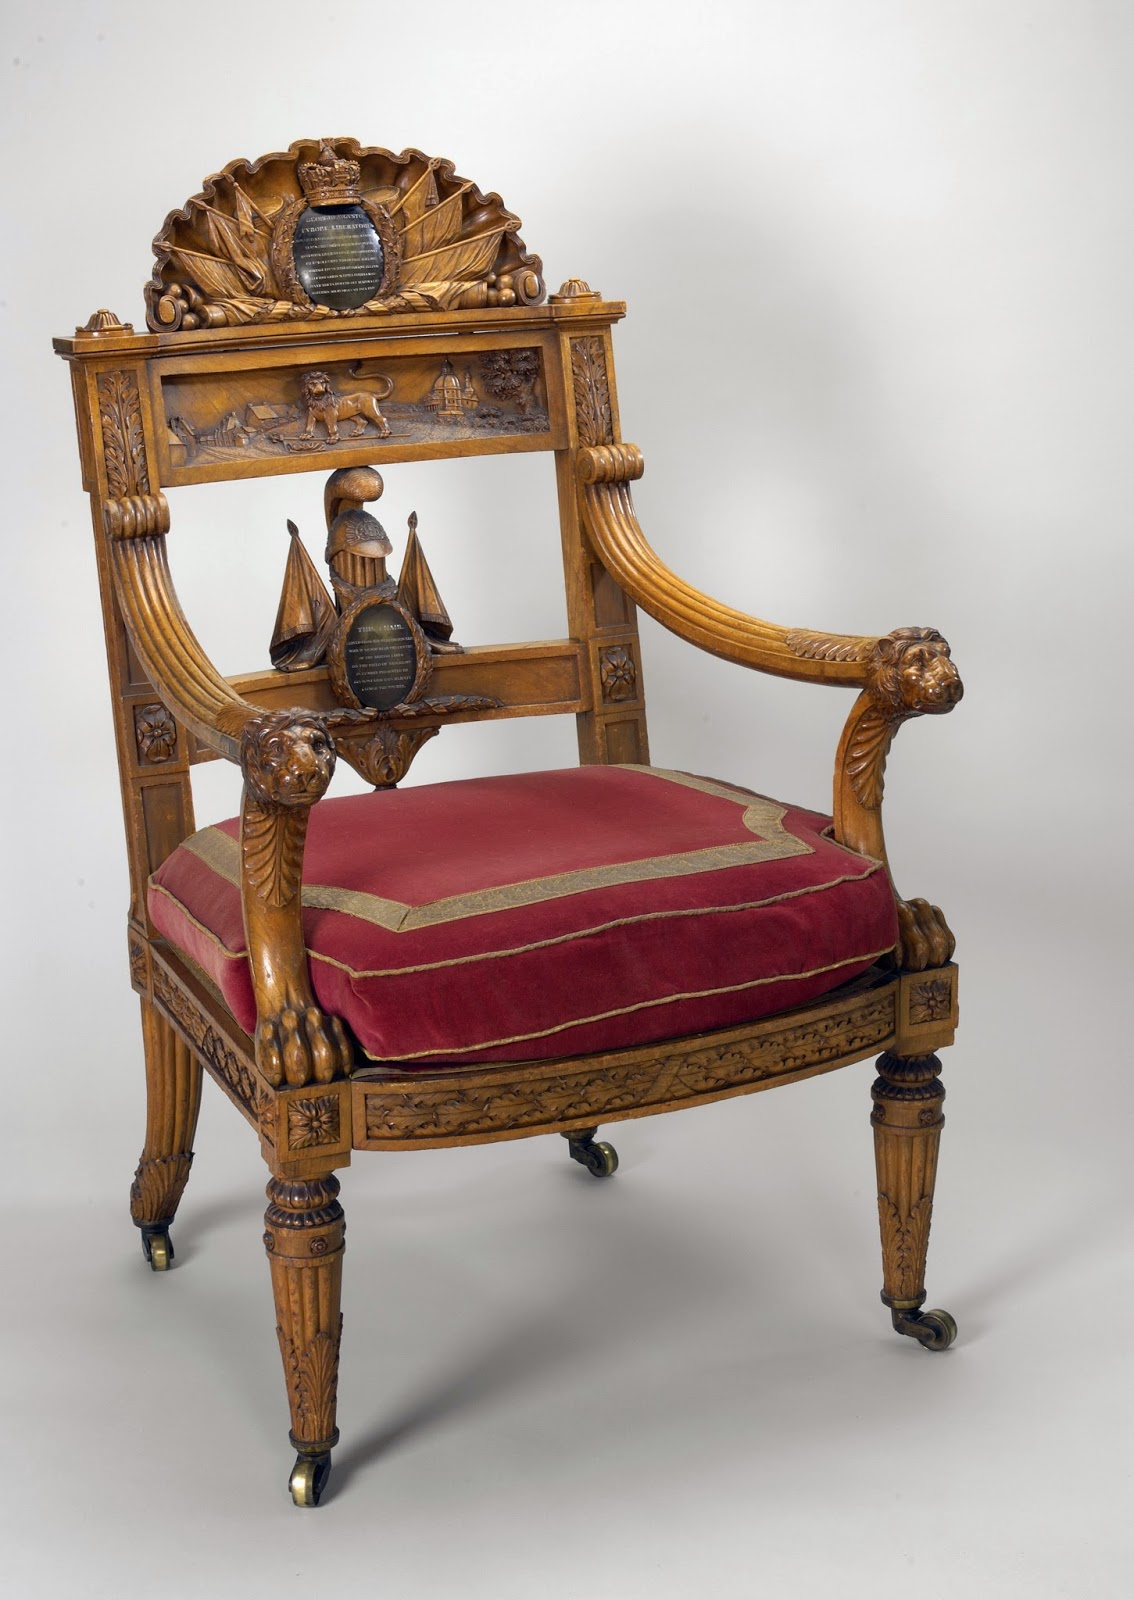 The Waterloo Chair   made by Thomas Chippendale the Younger  Royal Collection Trust  © Her Majesty Queen Elizabeth II 2015